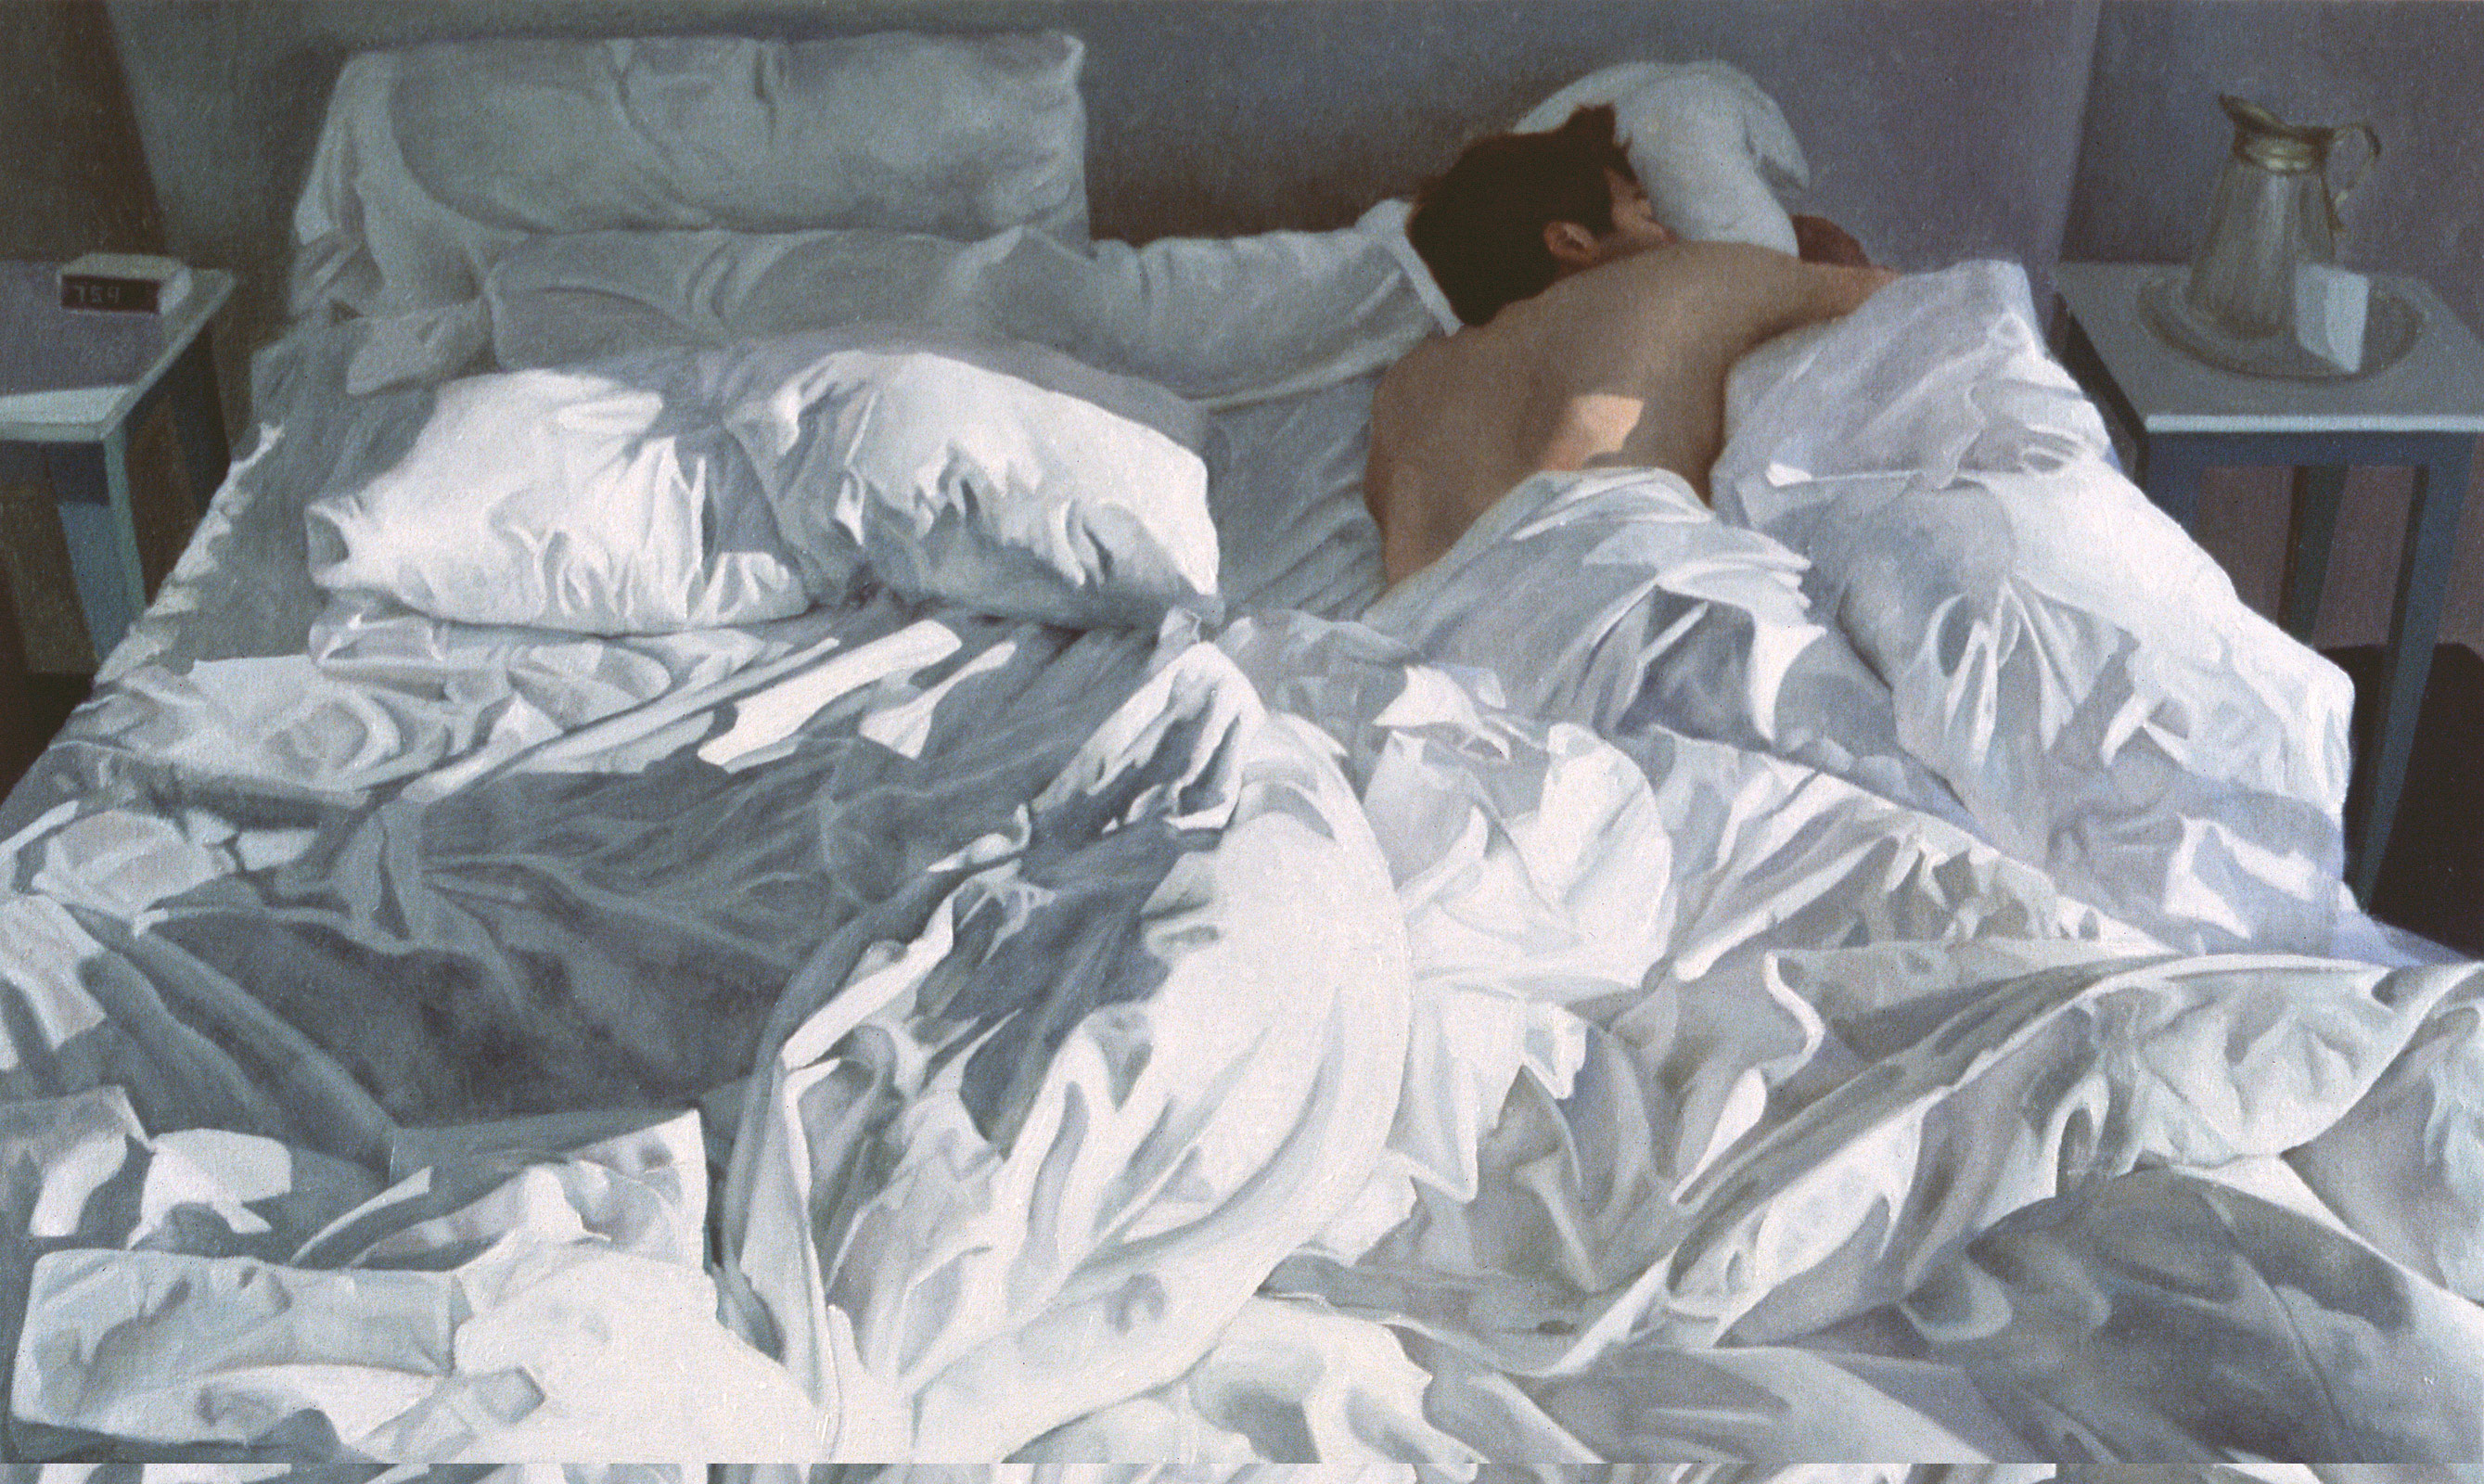 Morning After by Alyssa Monks - Kopie